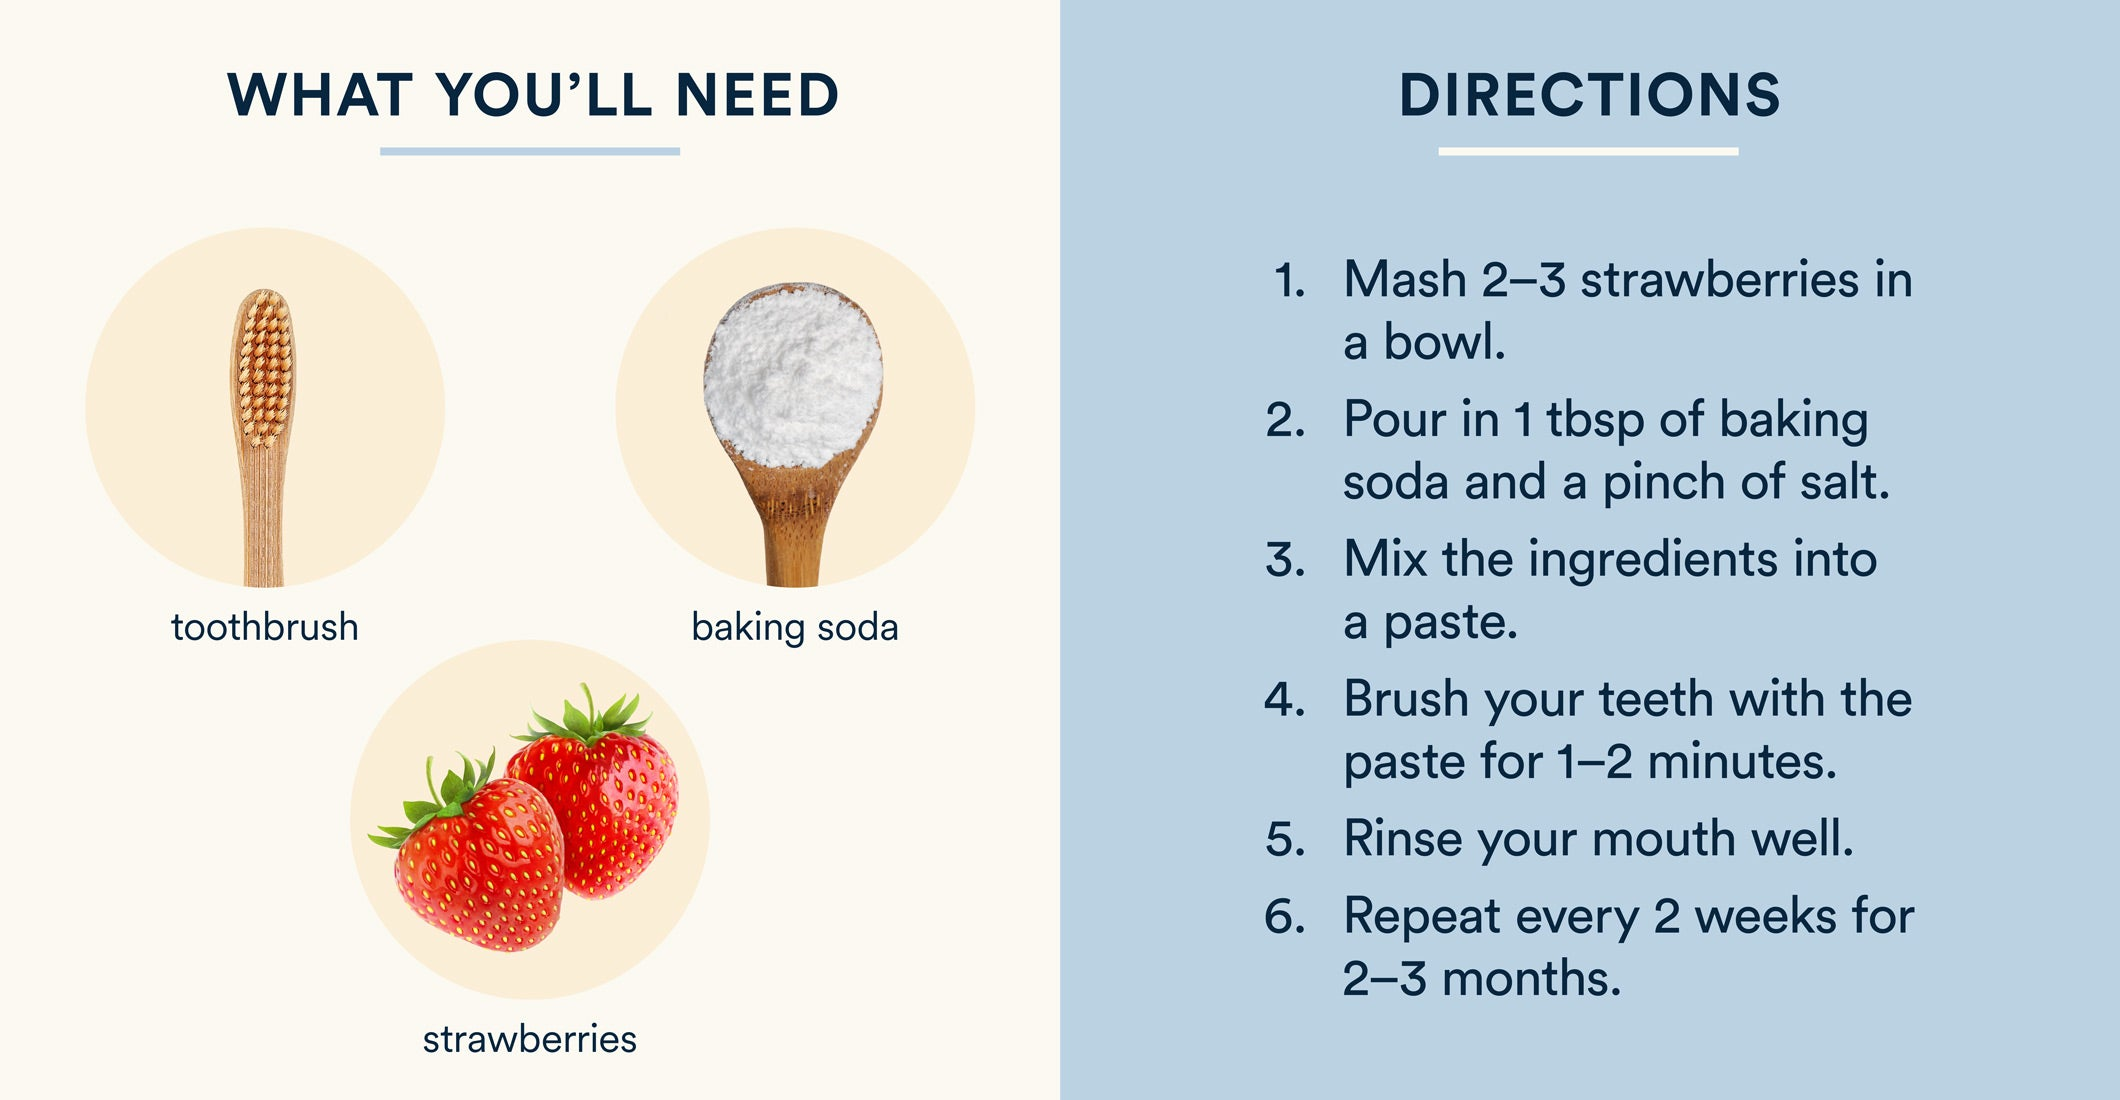 how to whiten teeth with baking soda and strawberries